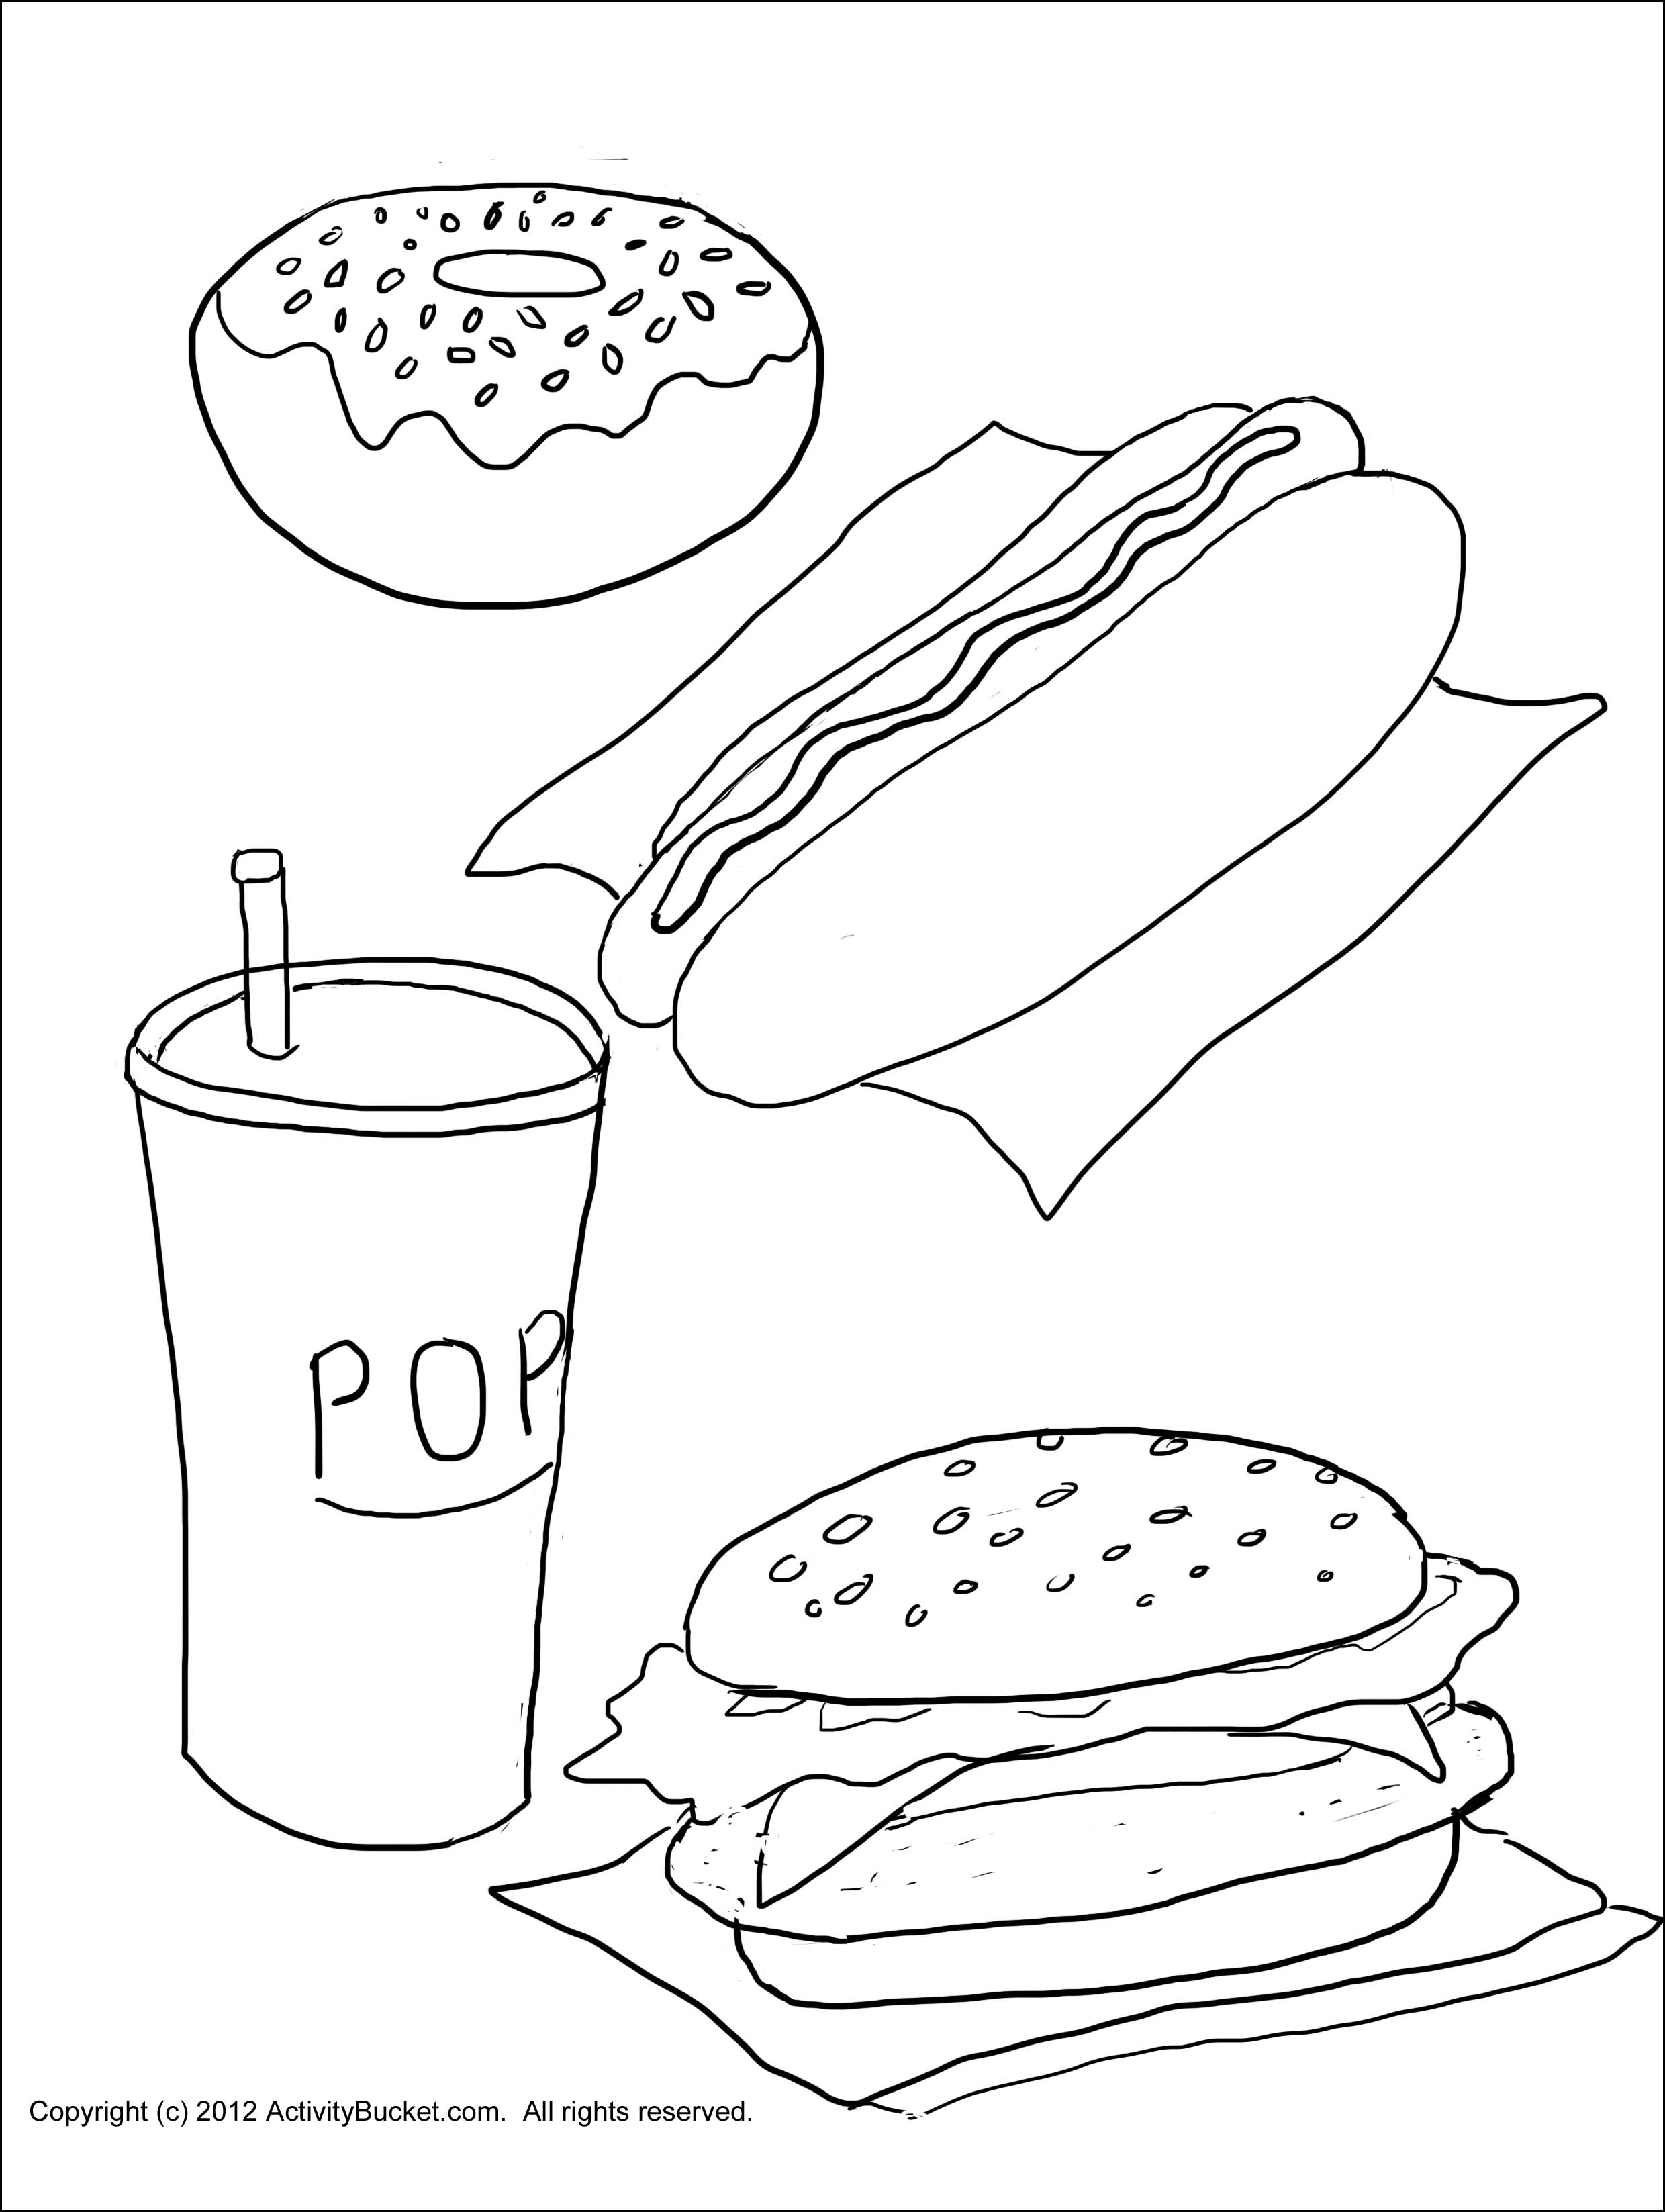 Fast Food Coloring Pages At Getcolorings